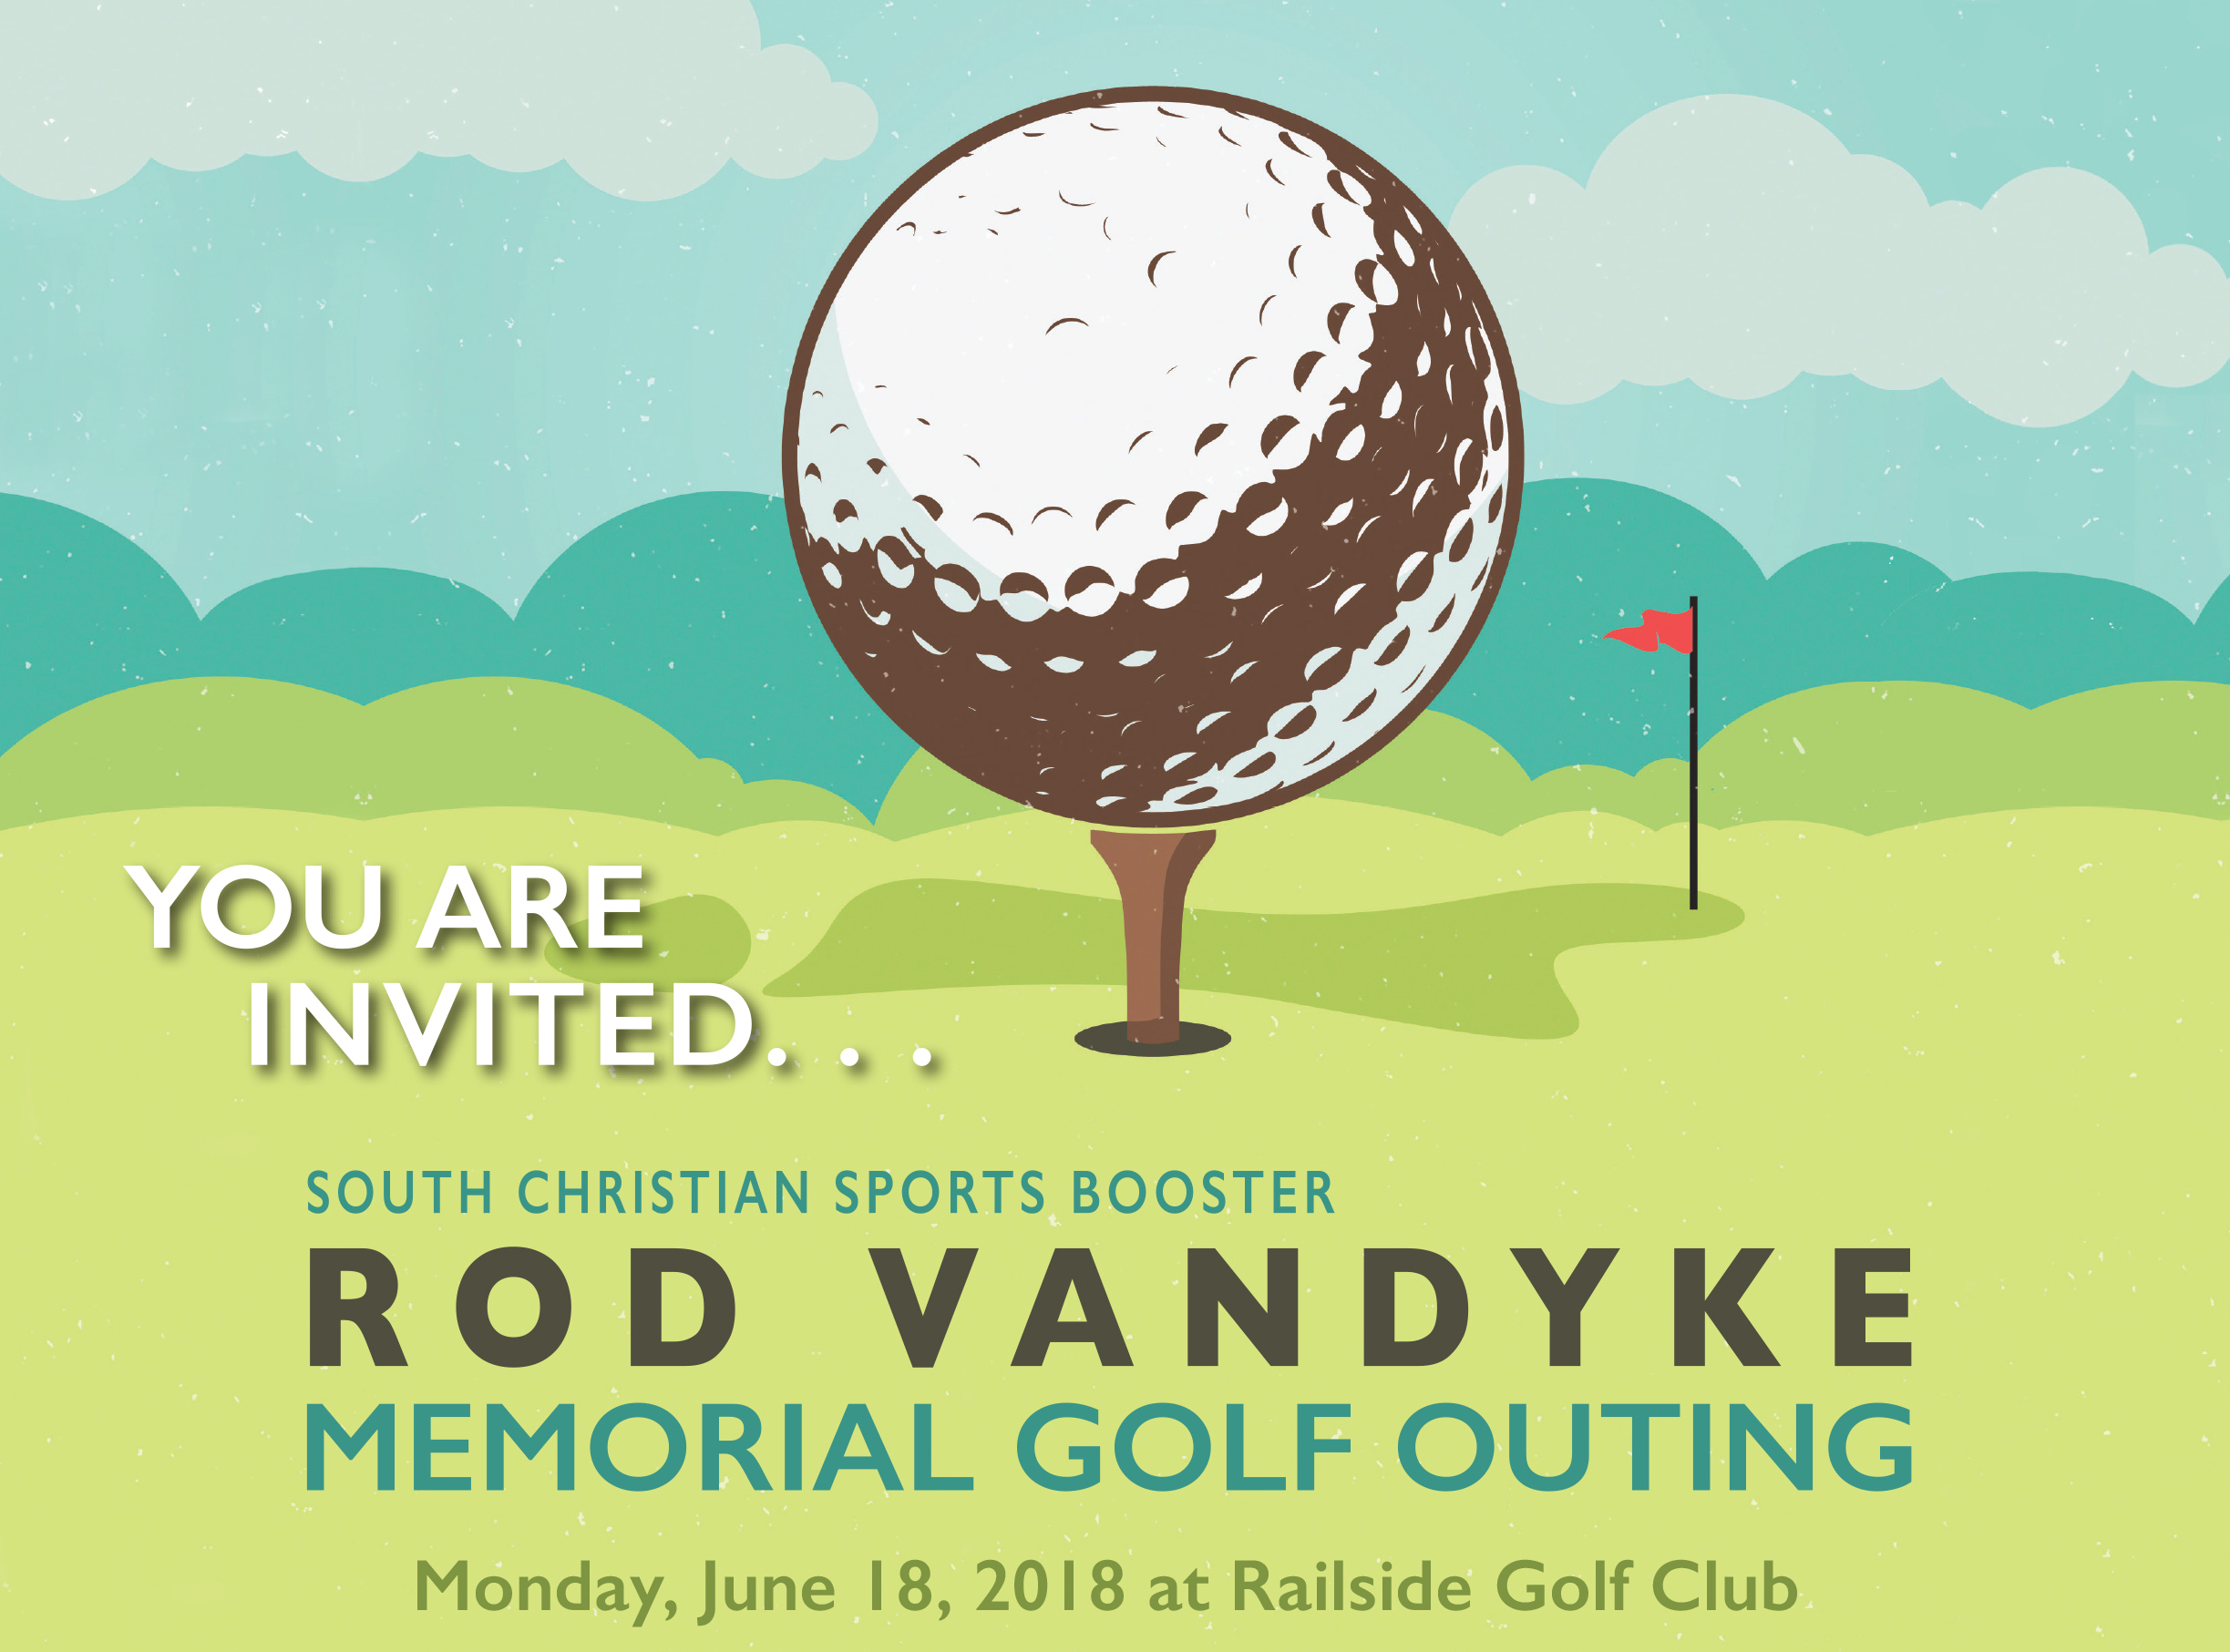 Morning Flight Players Needed – Rod VanDyke Memorial Golf Outing